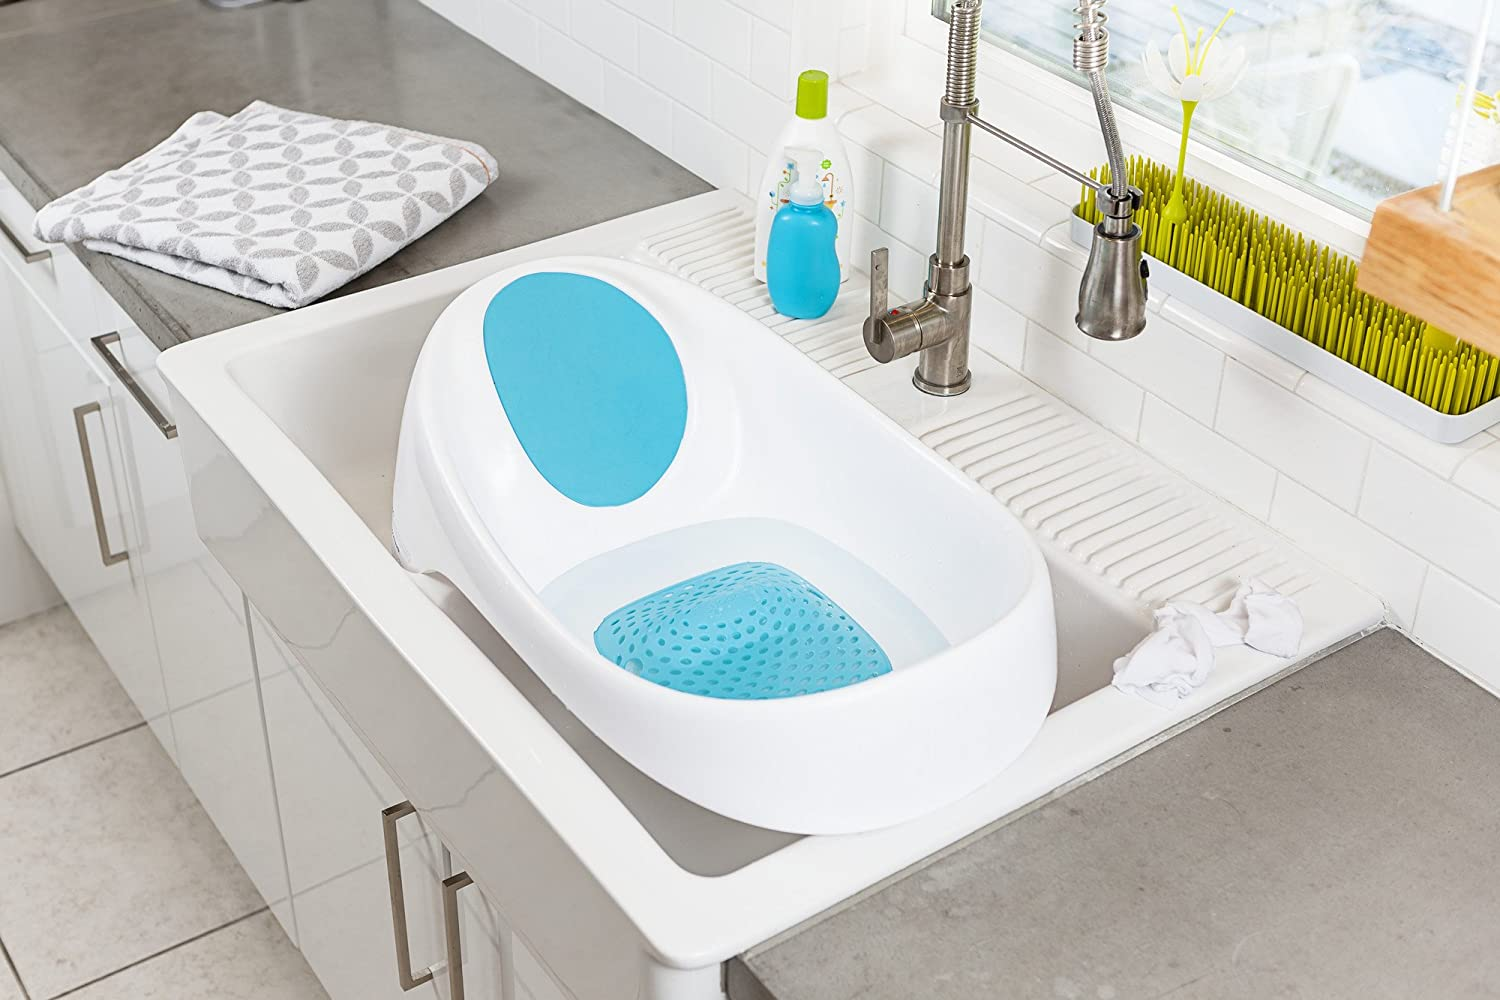 Amazon.com : Boon Soak 3-stage Bathtub, Gray, White : Baby